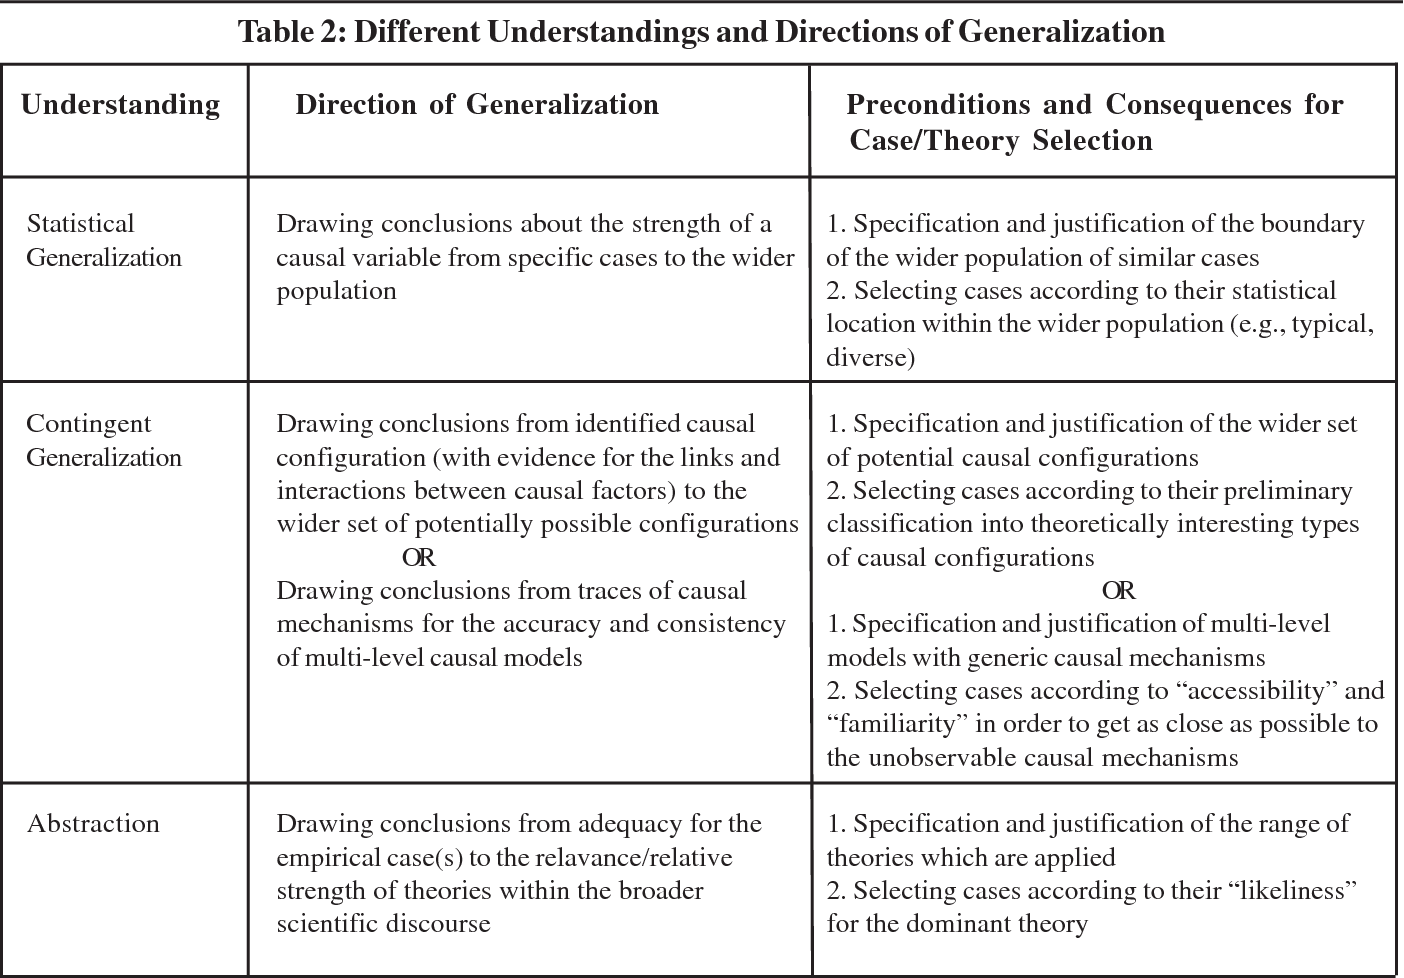 Table 2 from Co-Variation and Causal Process Tracing